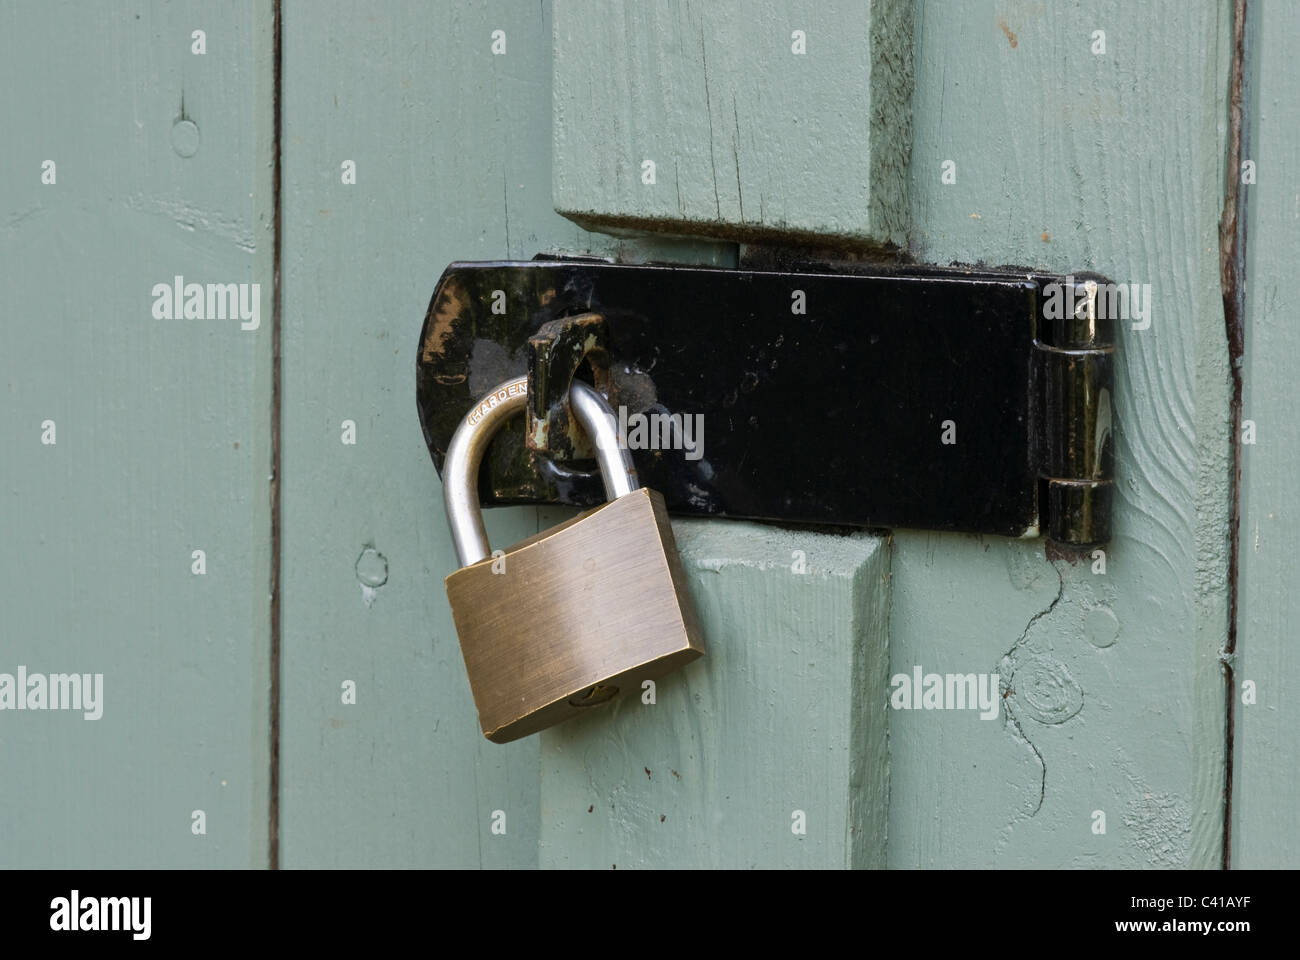 Old hasp and padlock on an old shed door. & Old hasp and padlock on an old shed door Stock Photo: 36909923 - Alamy